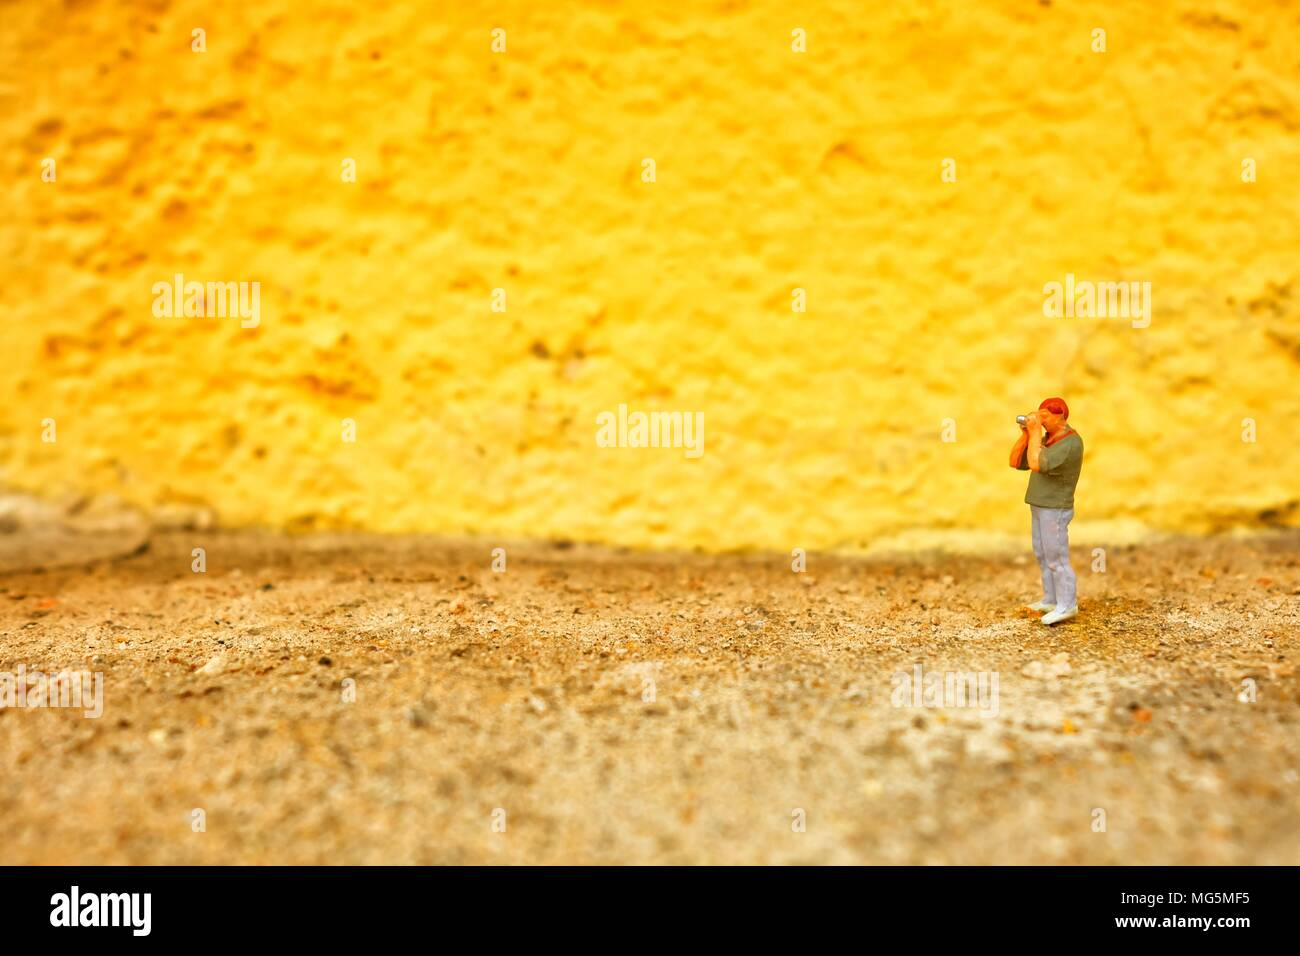 Miniature Figure Photographer with Yellow Painted Concrete Wall Background. - Stock Image